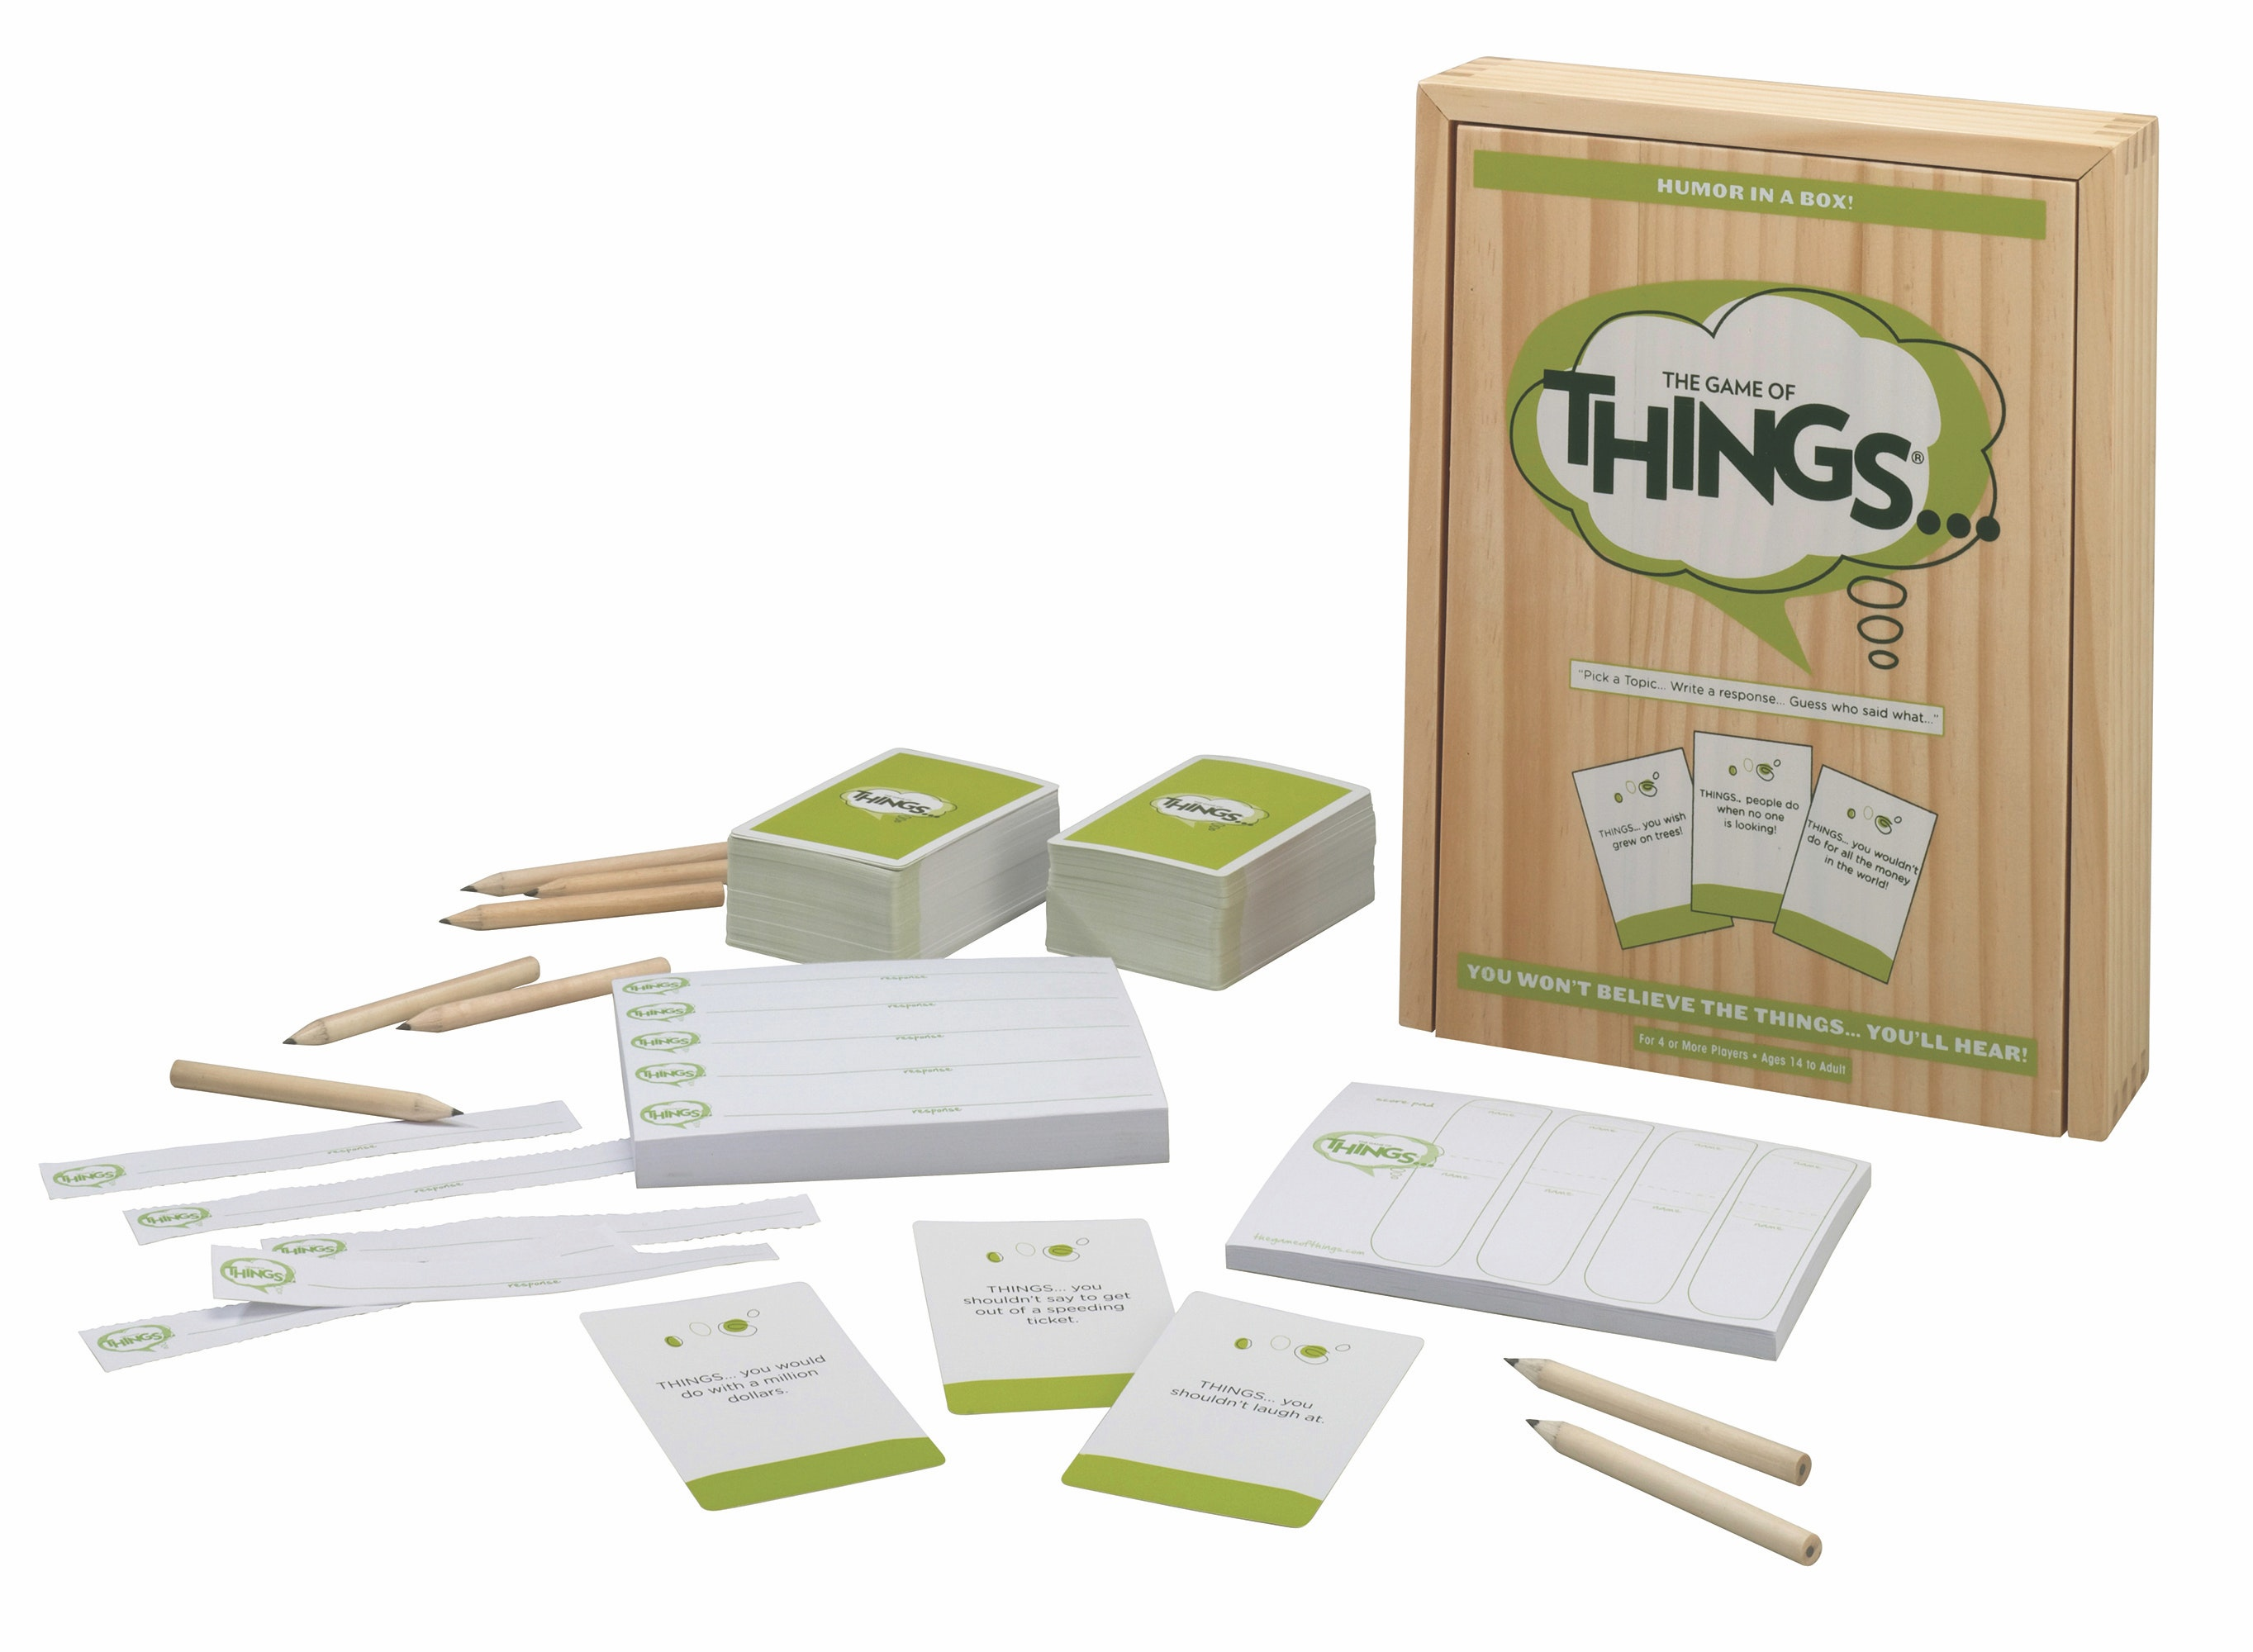 Game of things   pack   contents